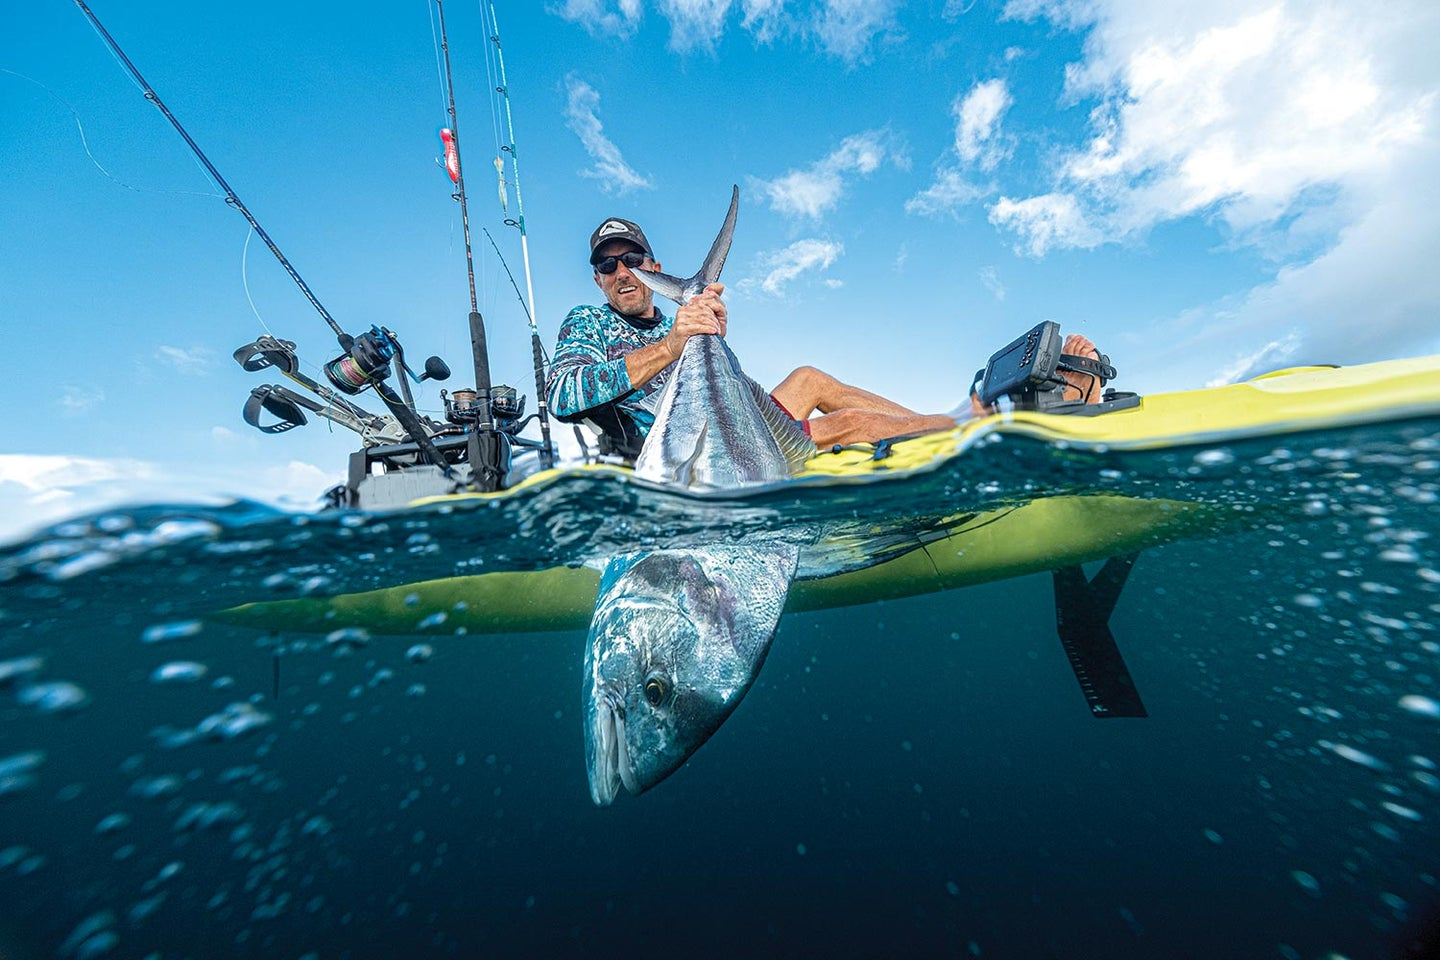 Lance Clinton fishing rooster caught in Costa Rica.